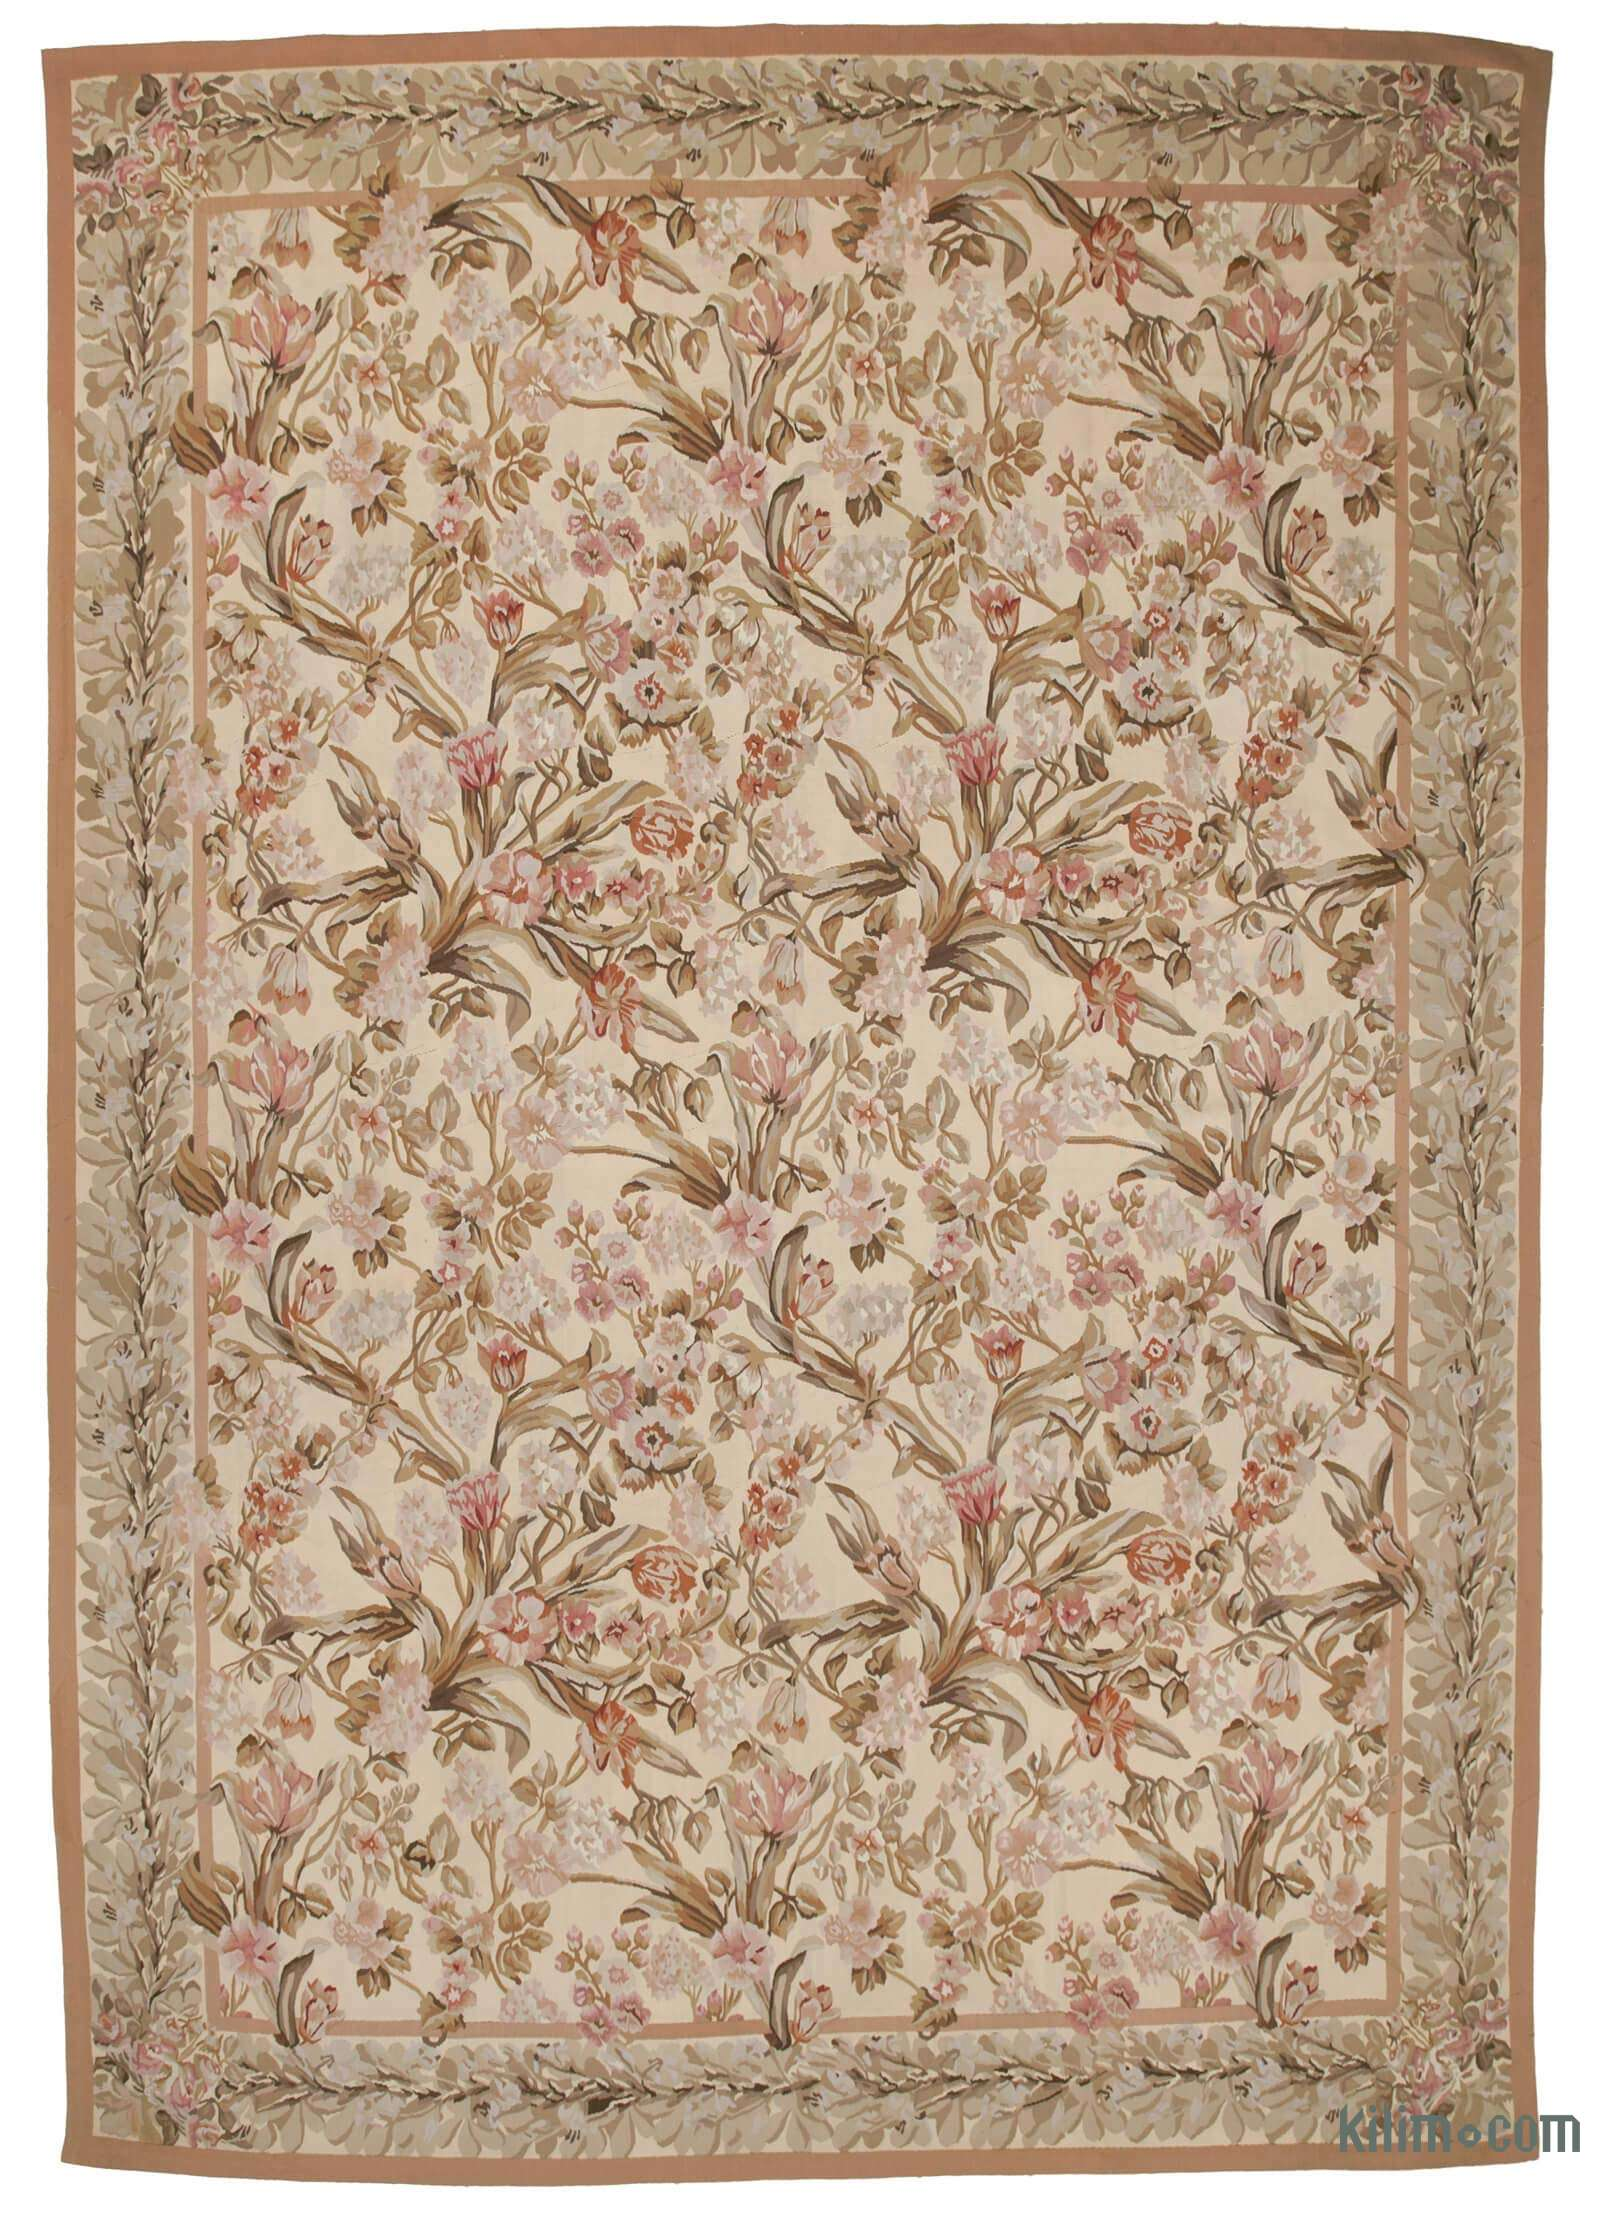 Aubusson Rug 9 11 X 14 119 In X 168 In